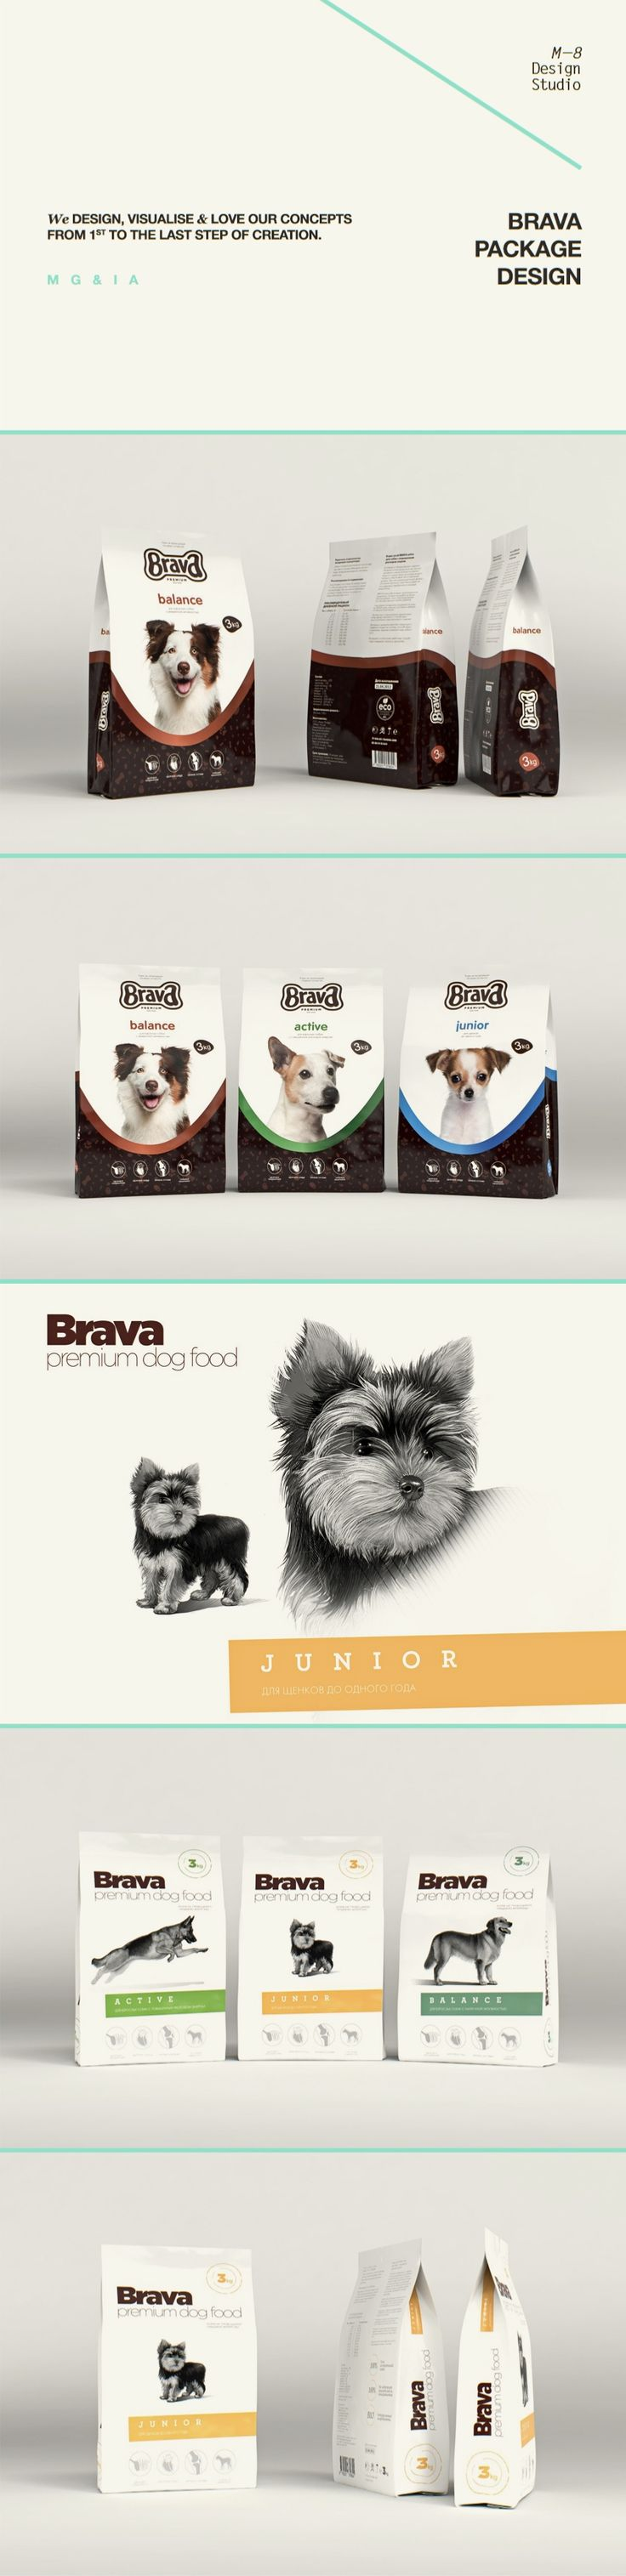 Brava (premium dog food), Package © Роман Тихонов